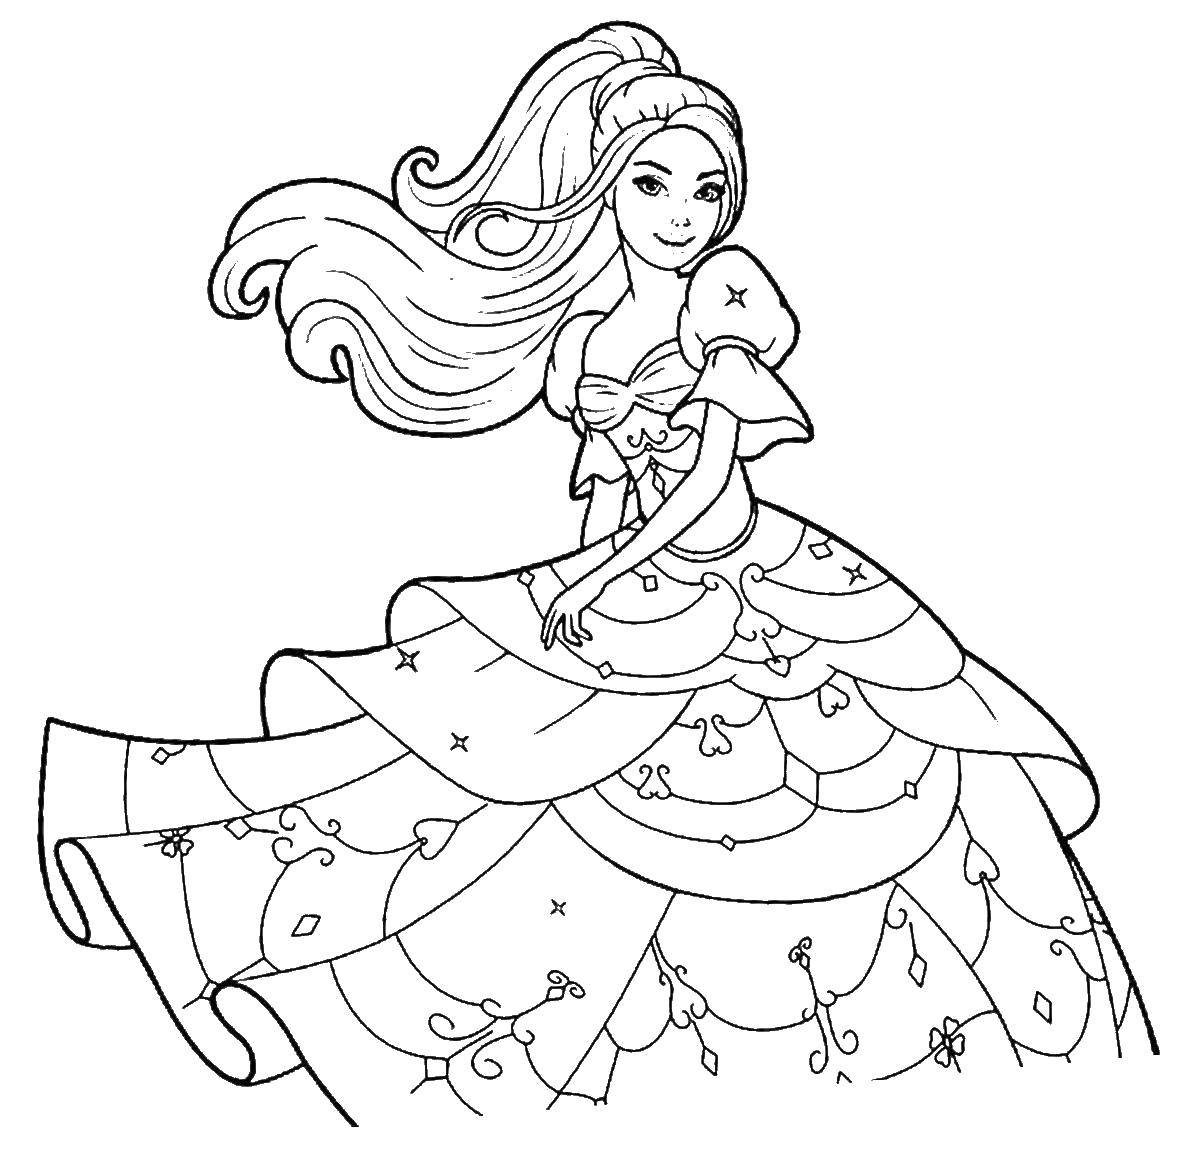 Coloring Graceful Princess. Category Barbie . Tags:  Barbie , Princess, Prince.